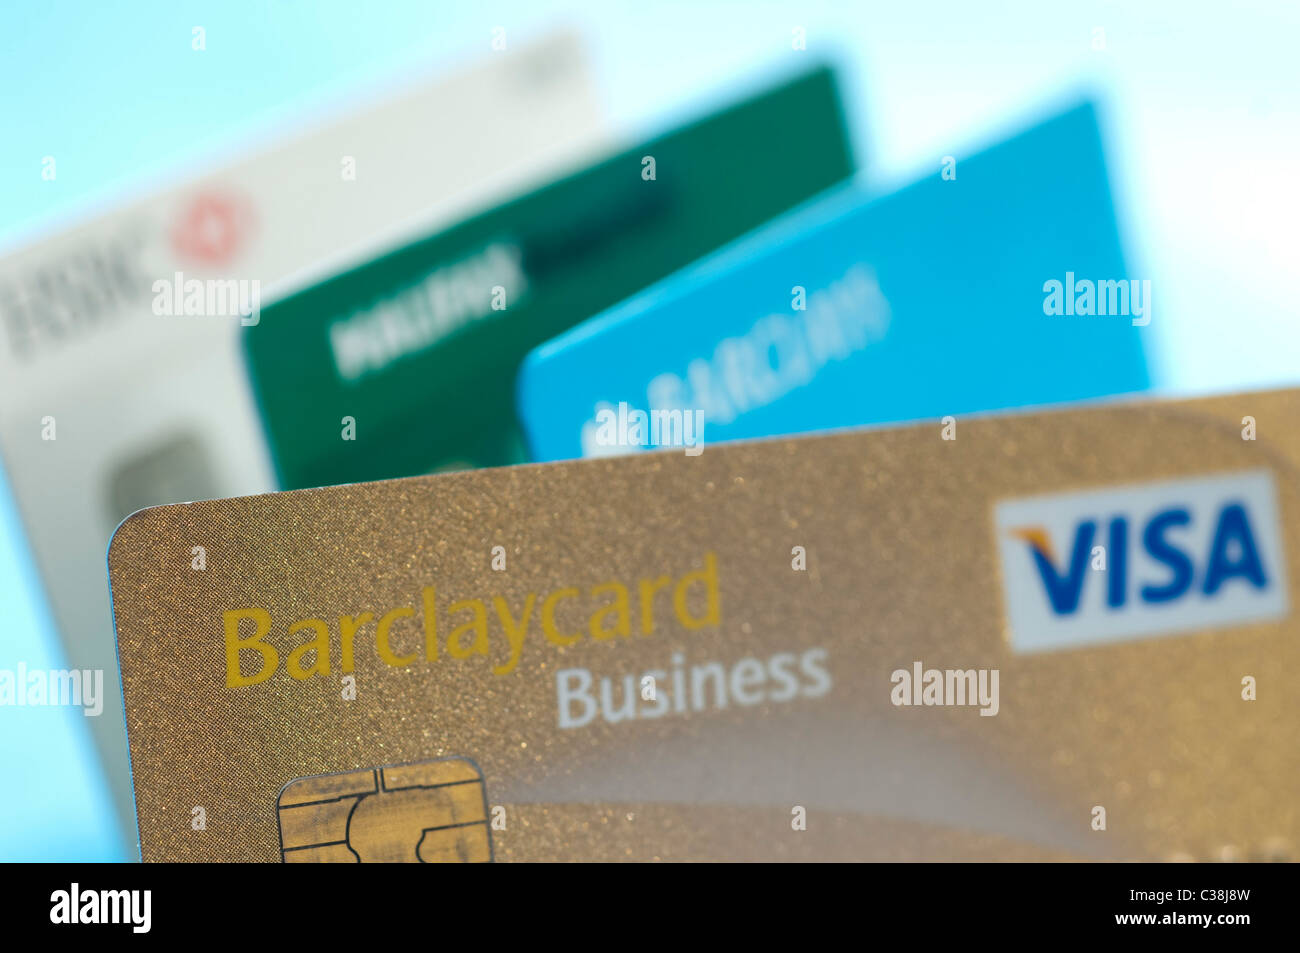 A Barclays Business VISA credit card Stock Photo: 36454681 - Alamy